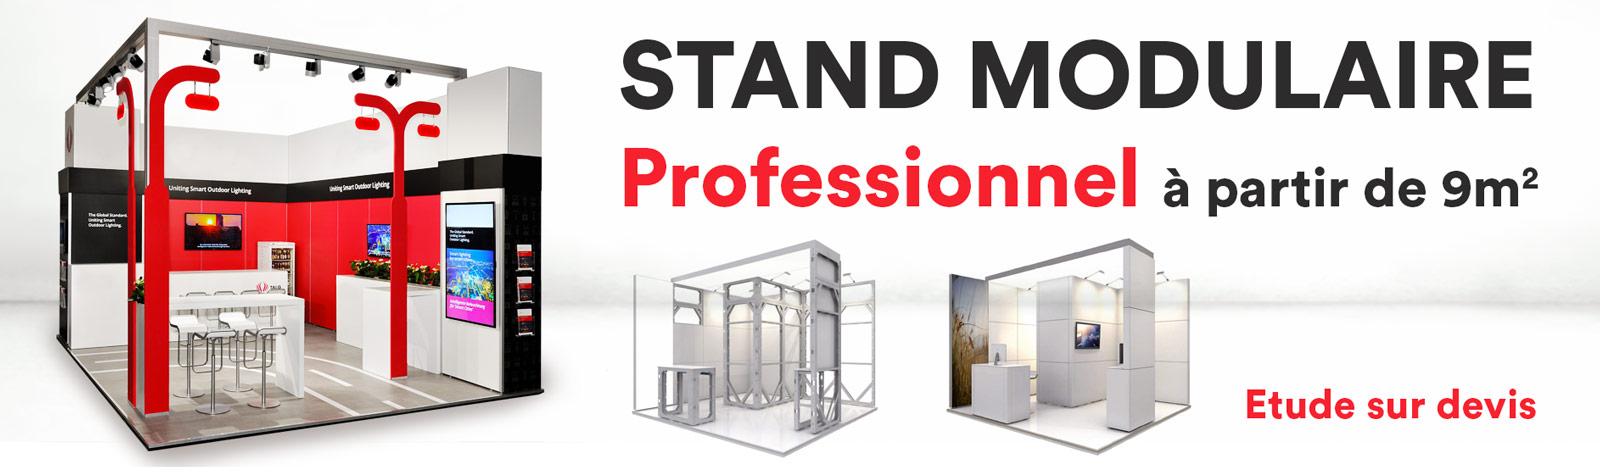 stand modulable professionnel